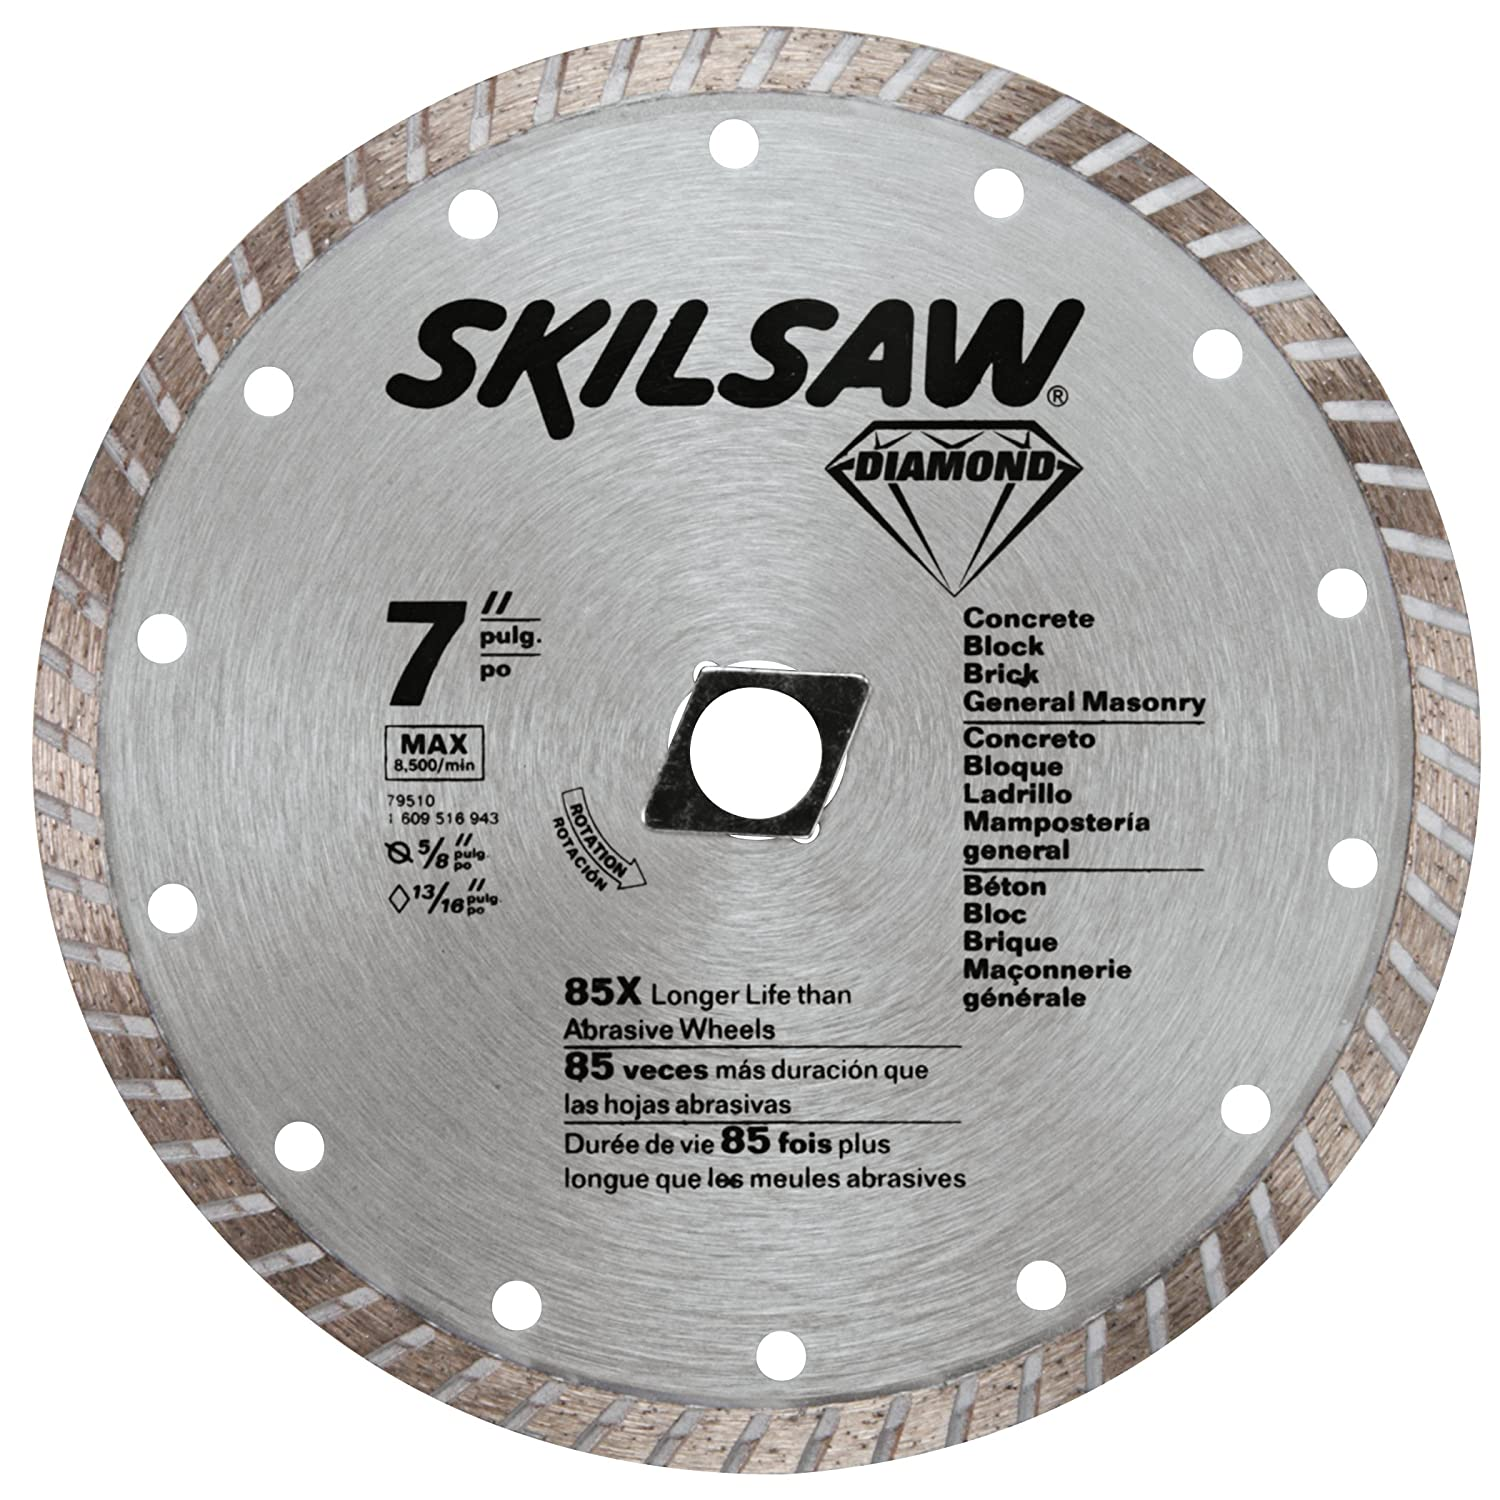 Skil 79510 7 inch turbo rim diamond saw blade with 58 inch or skil 79510 7 inch turbo rim diamond saw blade with 58 inch or diamond knockout arbor for masonry amazon greentooth Image collections